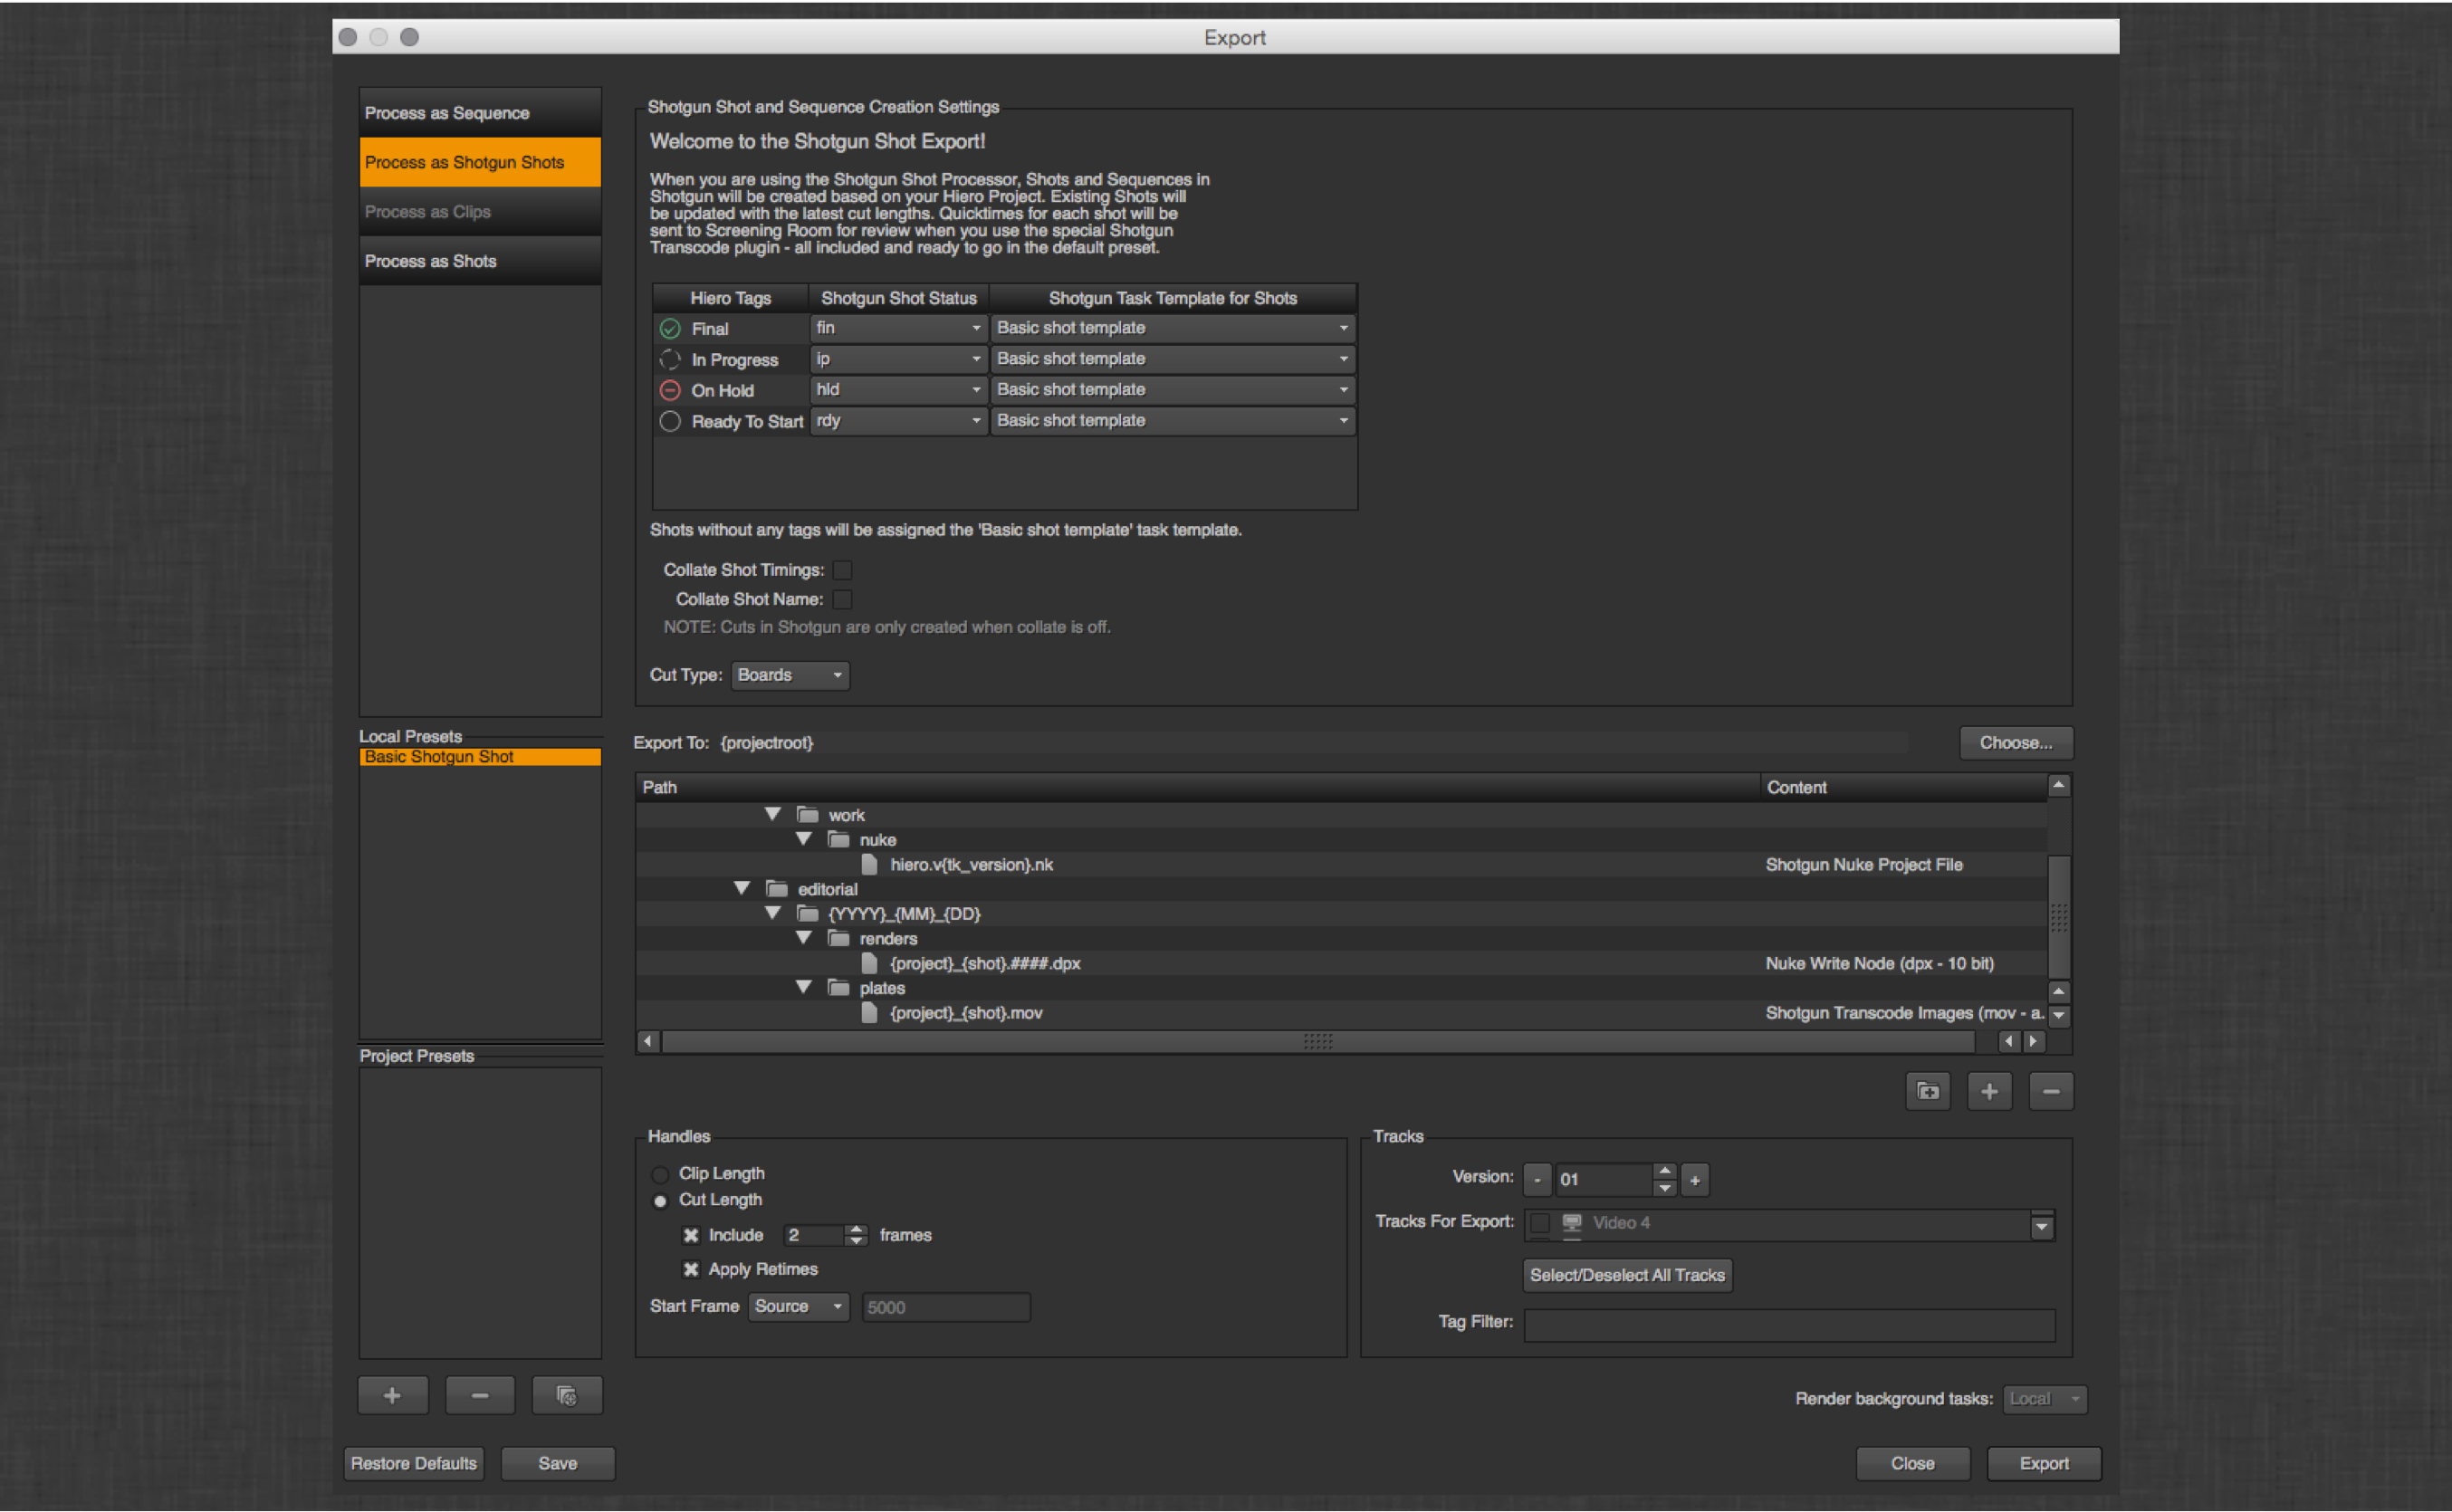 Nuke Studio - Shotgun aware exporting – Shotgun Support